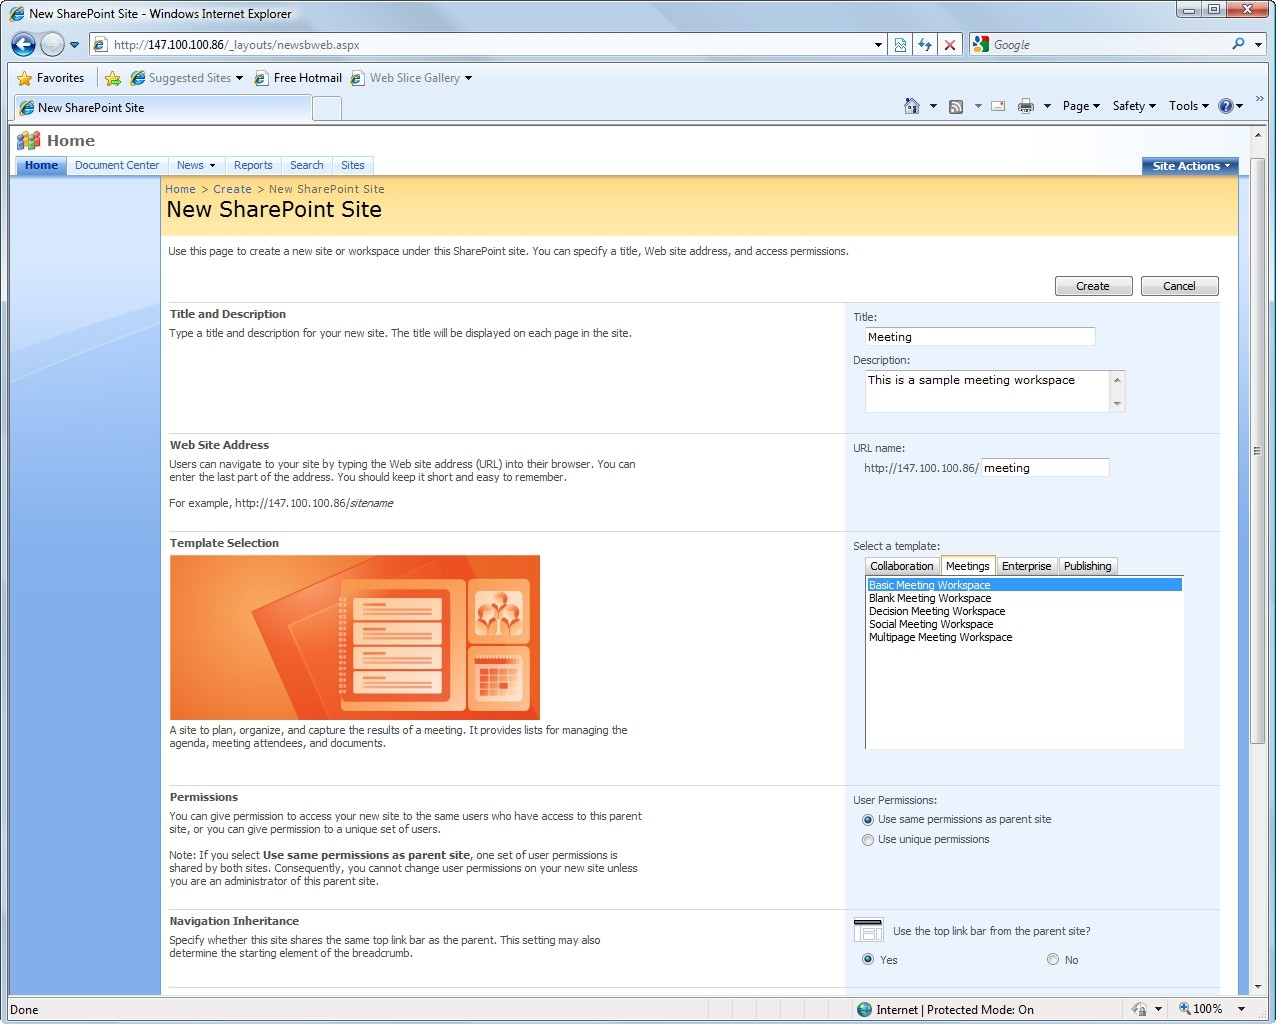 sharepoint 2007 site templates - creating meeting workspaces in moss 2007 and outlook 2007